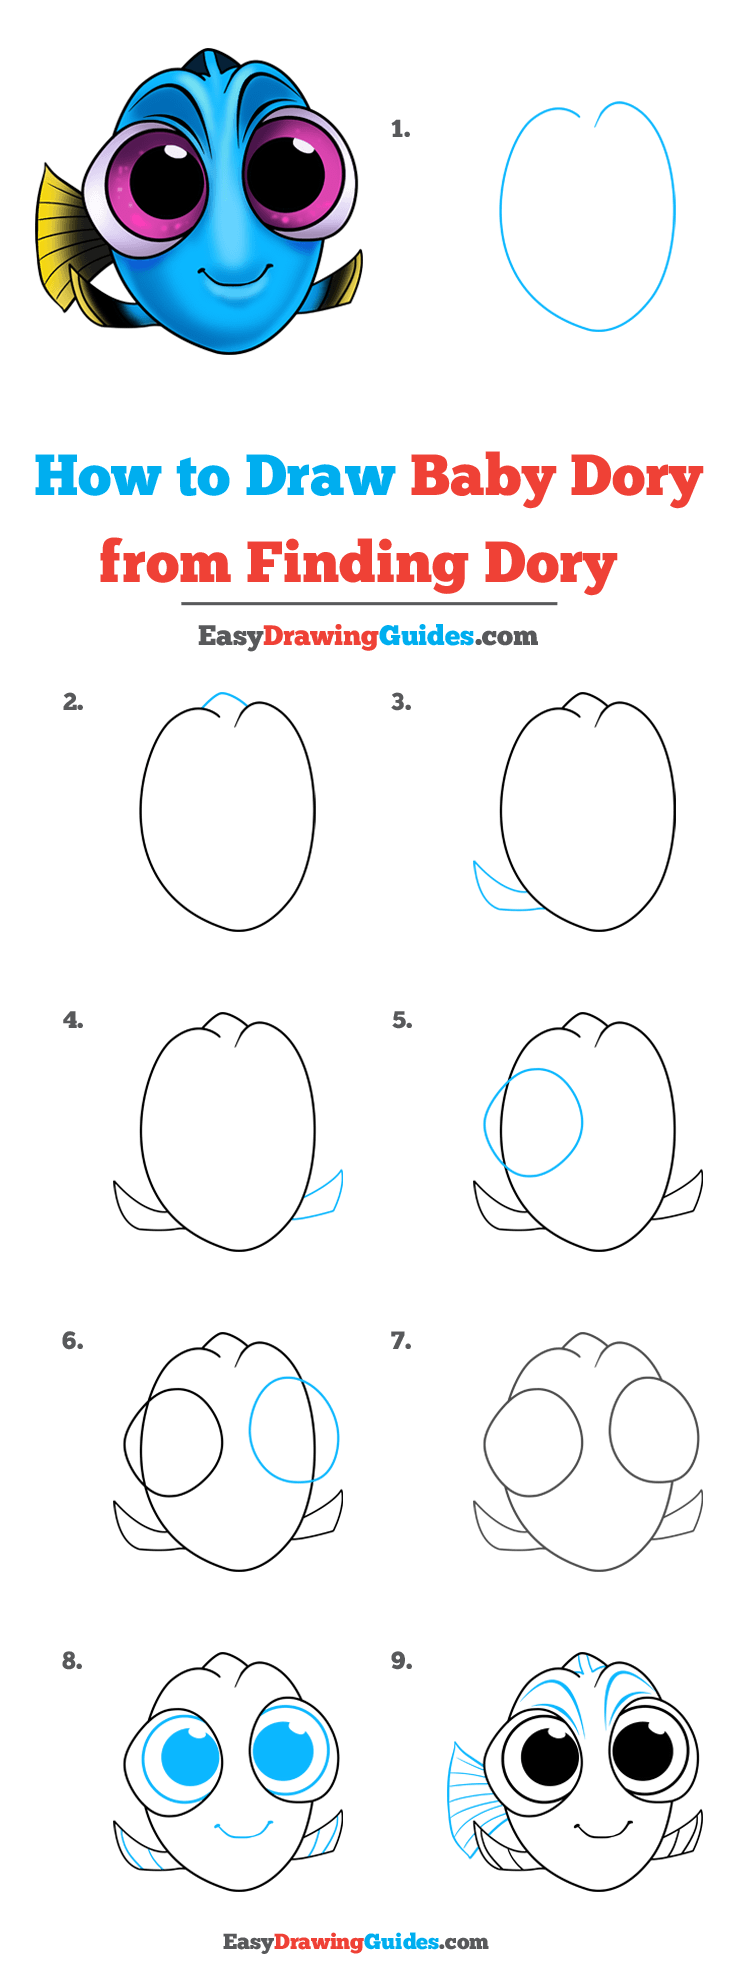 How to Draw Baby Dory from Finding Dory